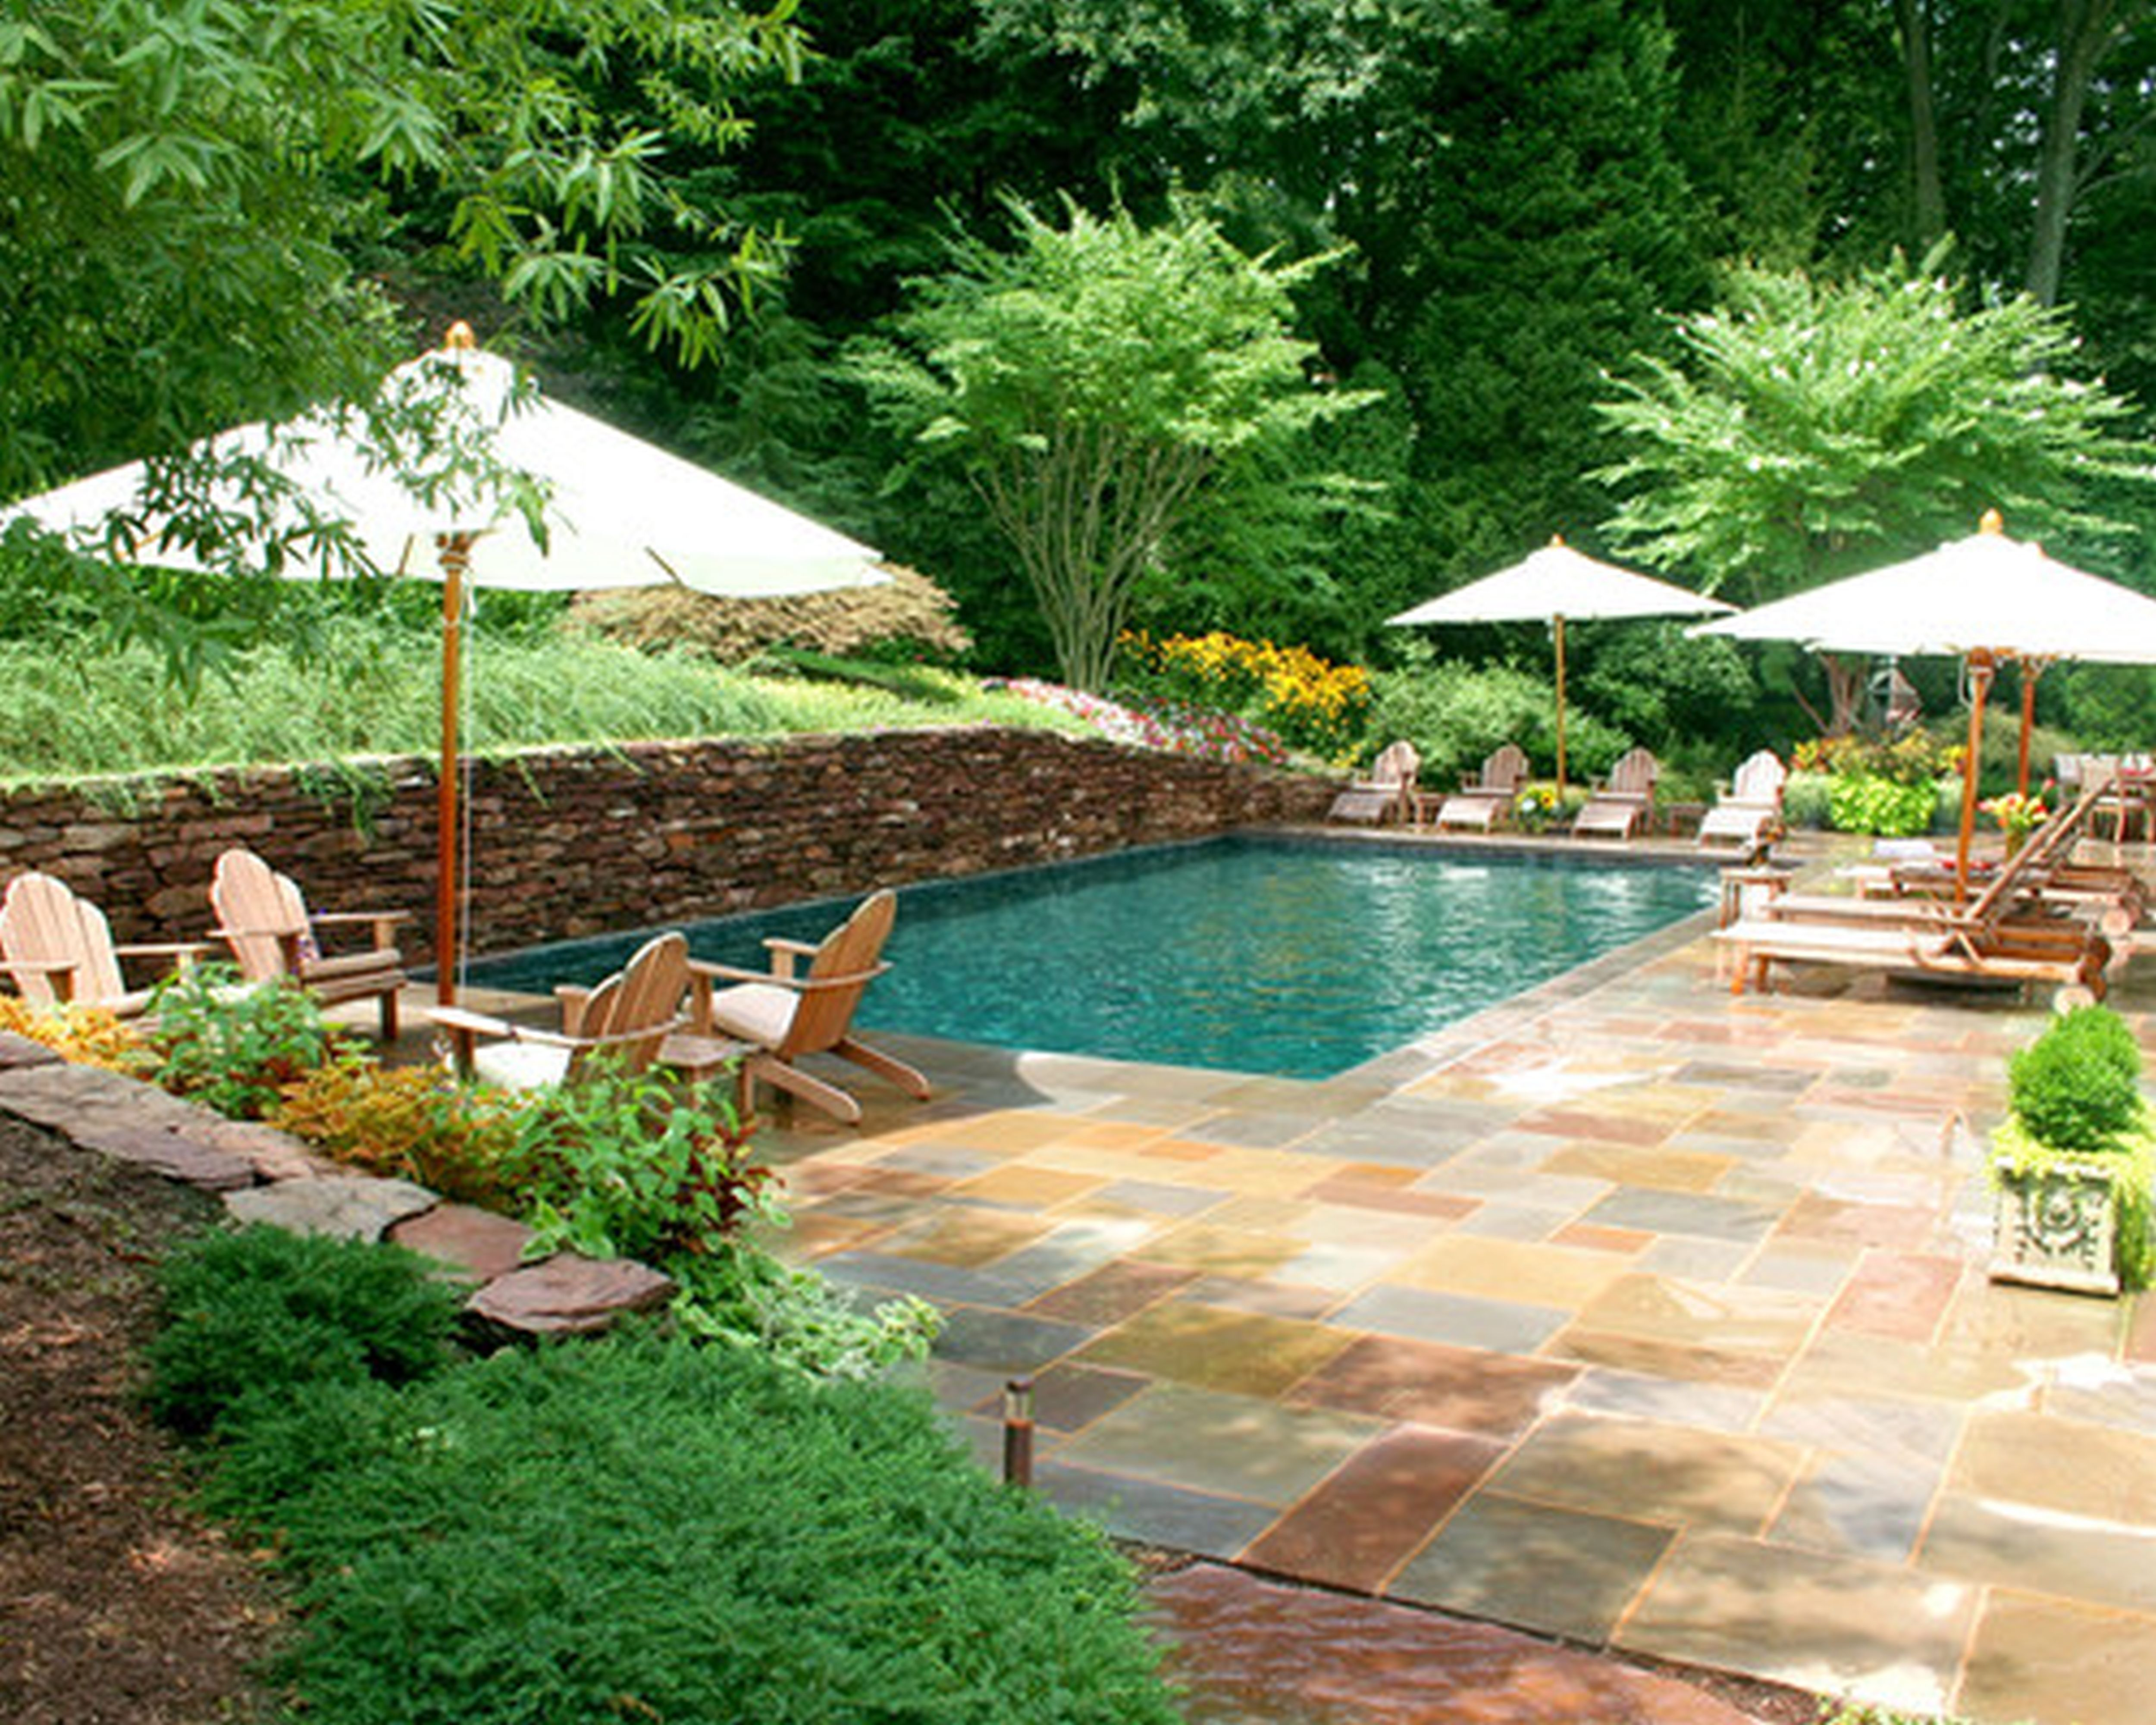 Designing your backyard swimming pool part i of ii for Backyard garden designs